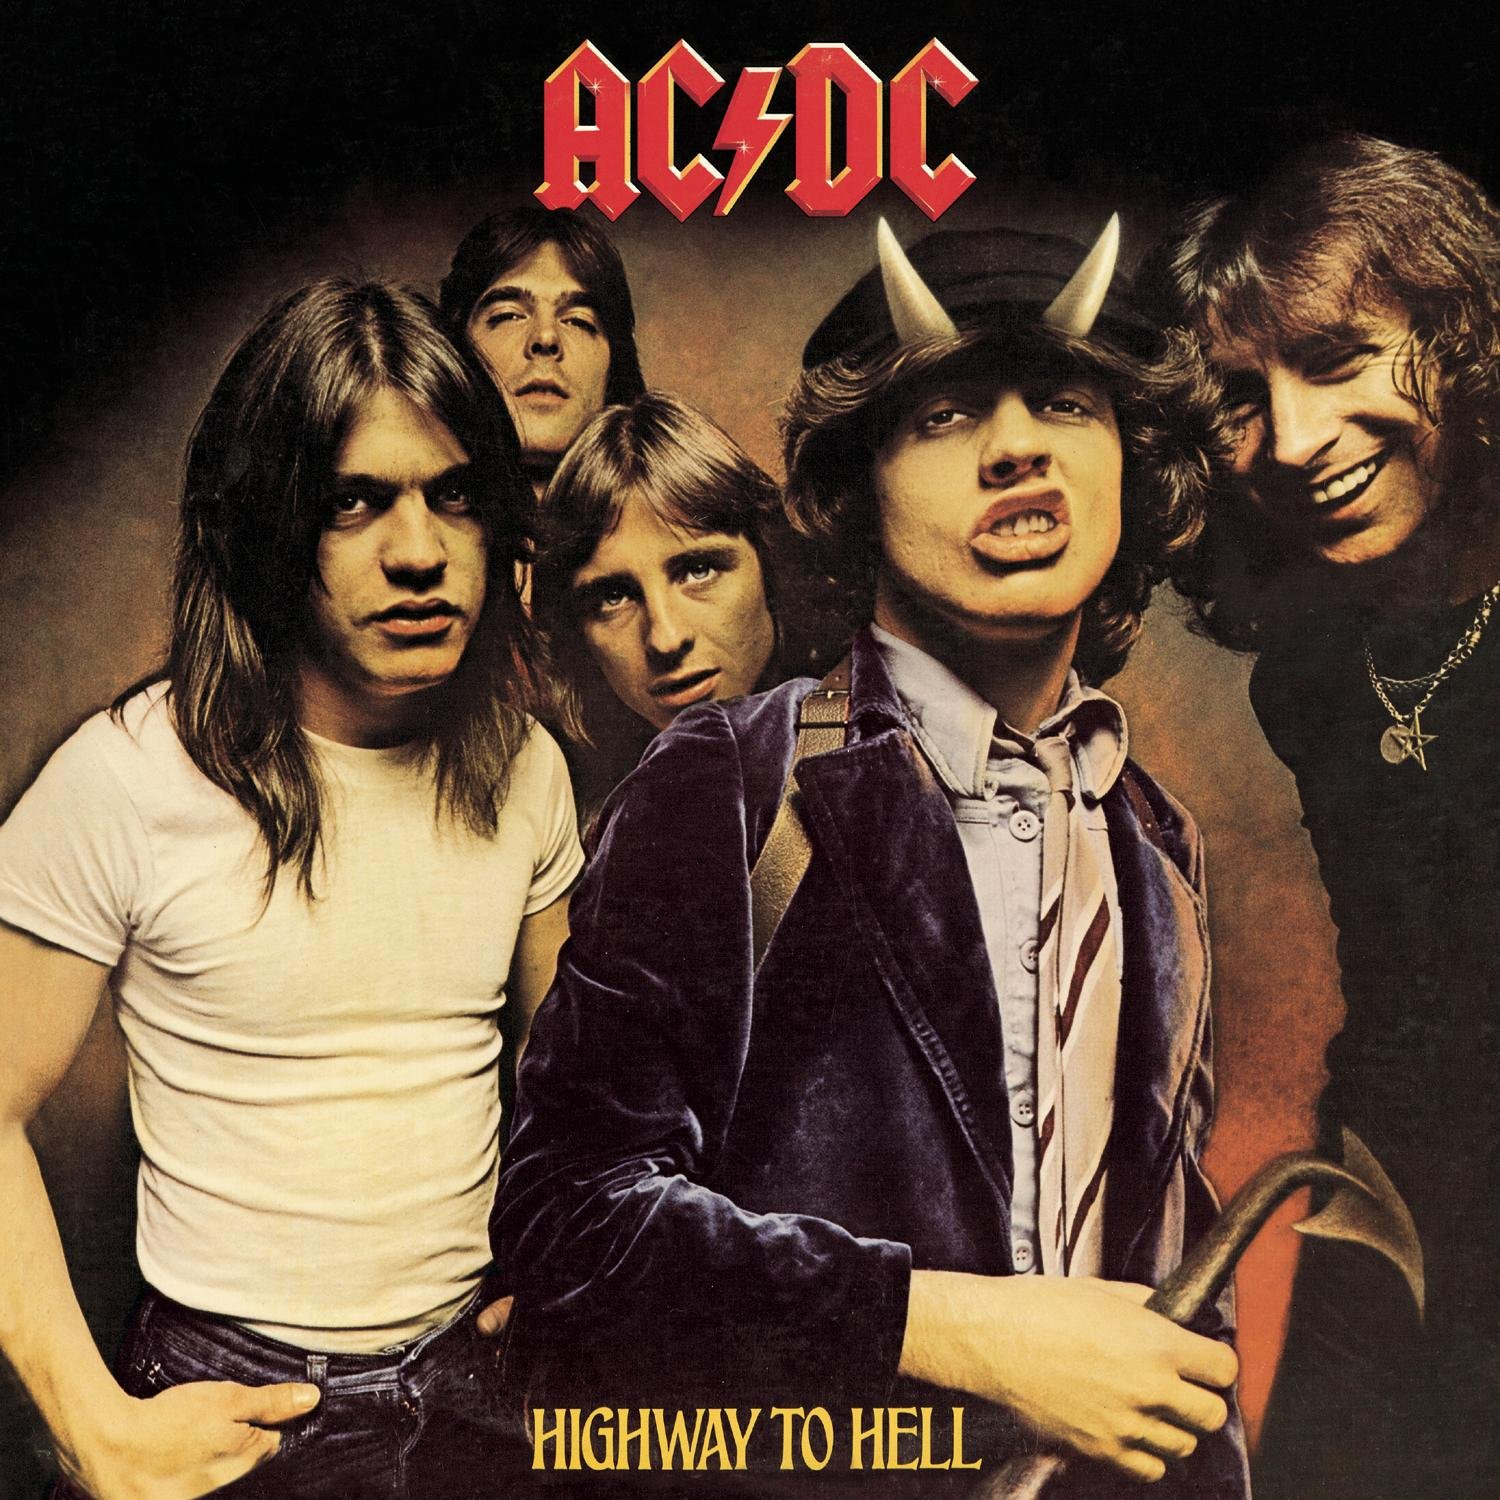 Highway to Hell [Vinyl] by Sony Music Entertainment